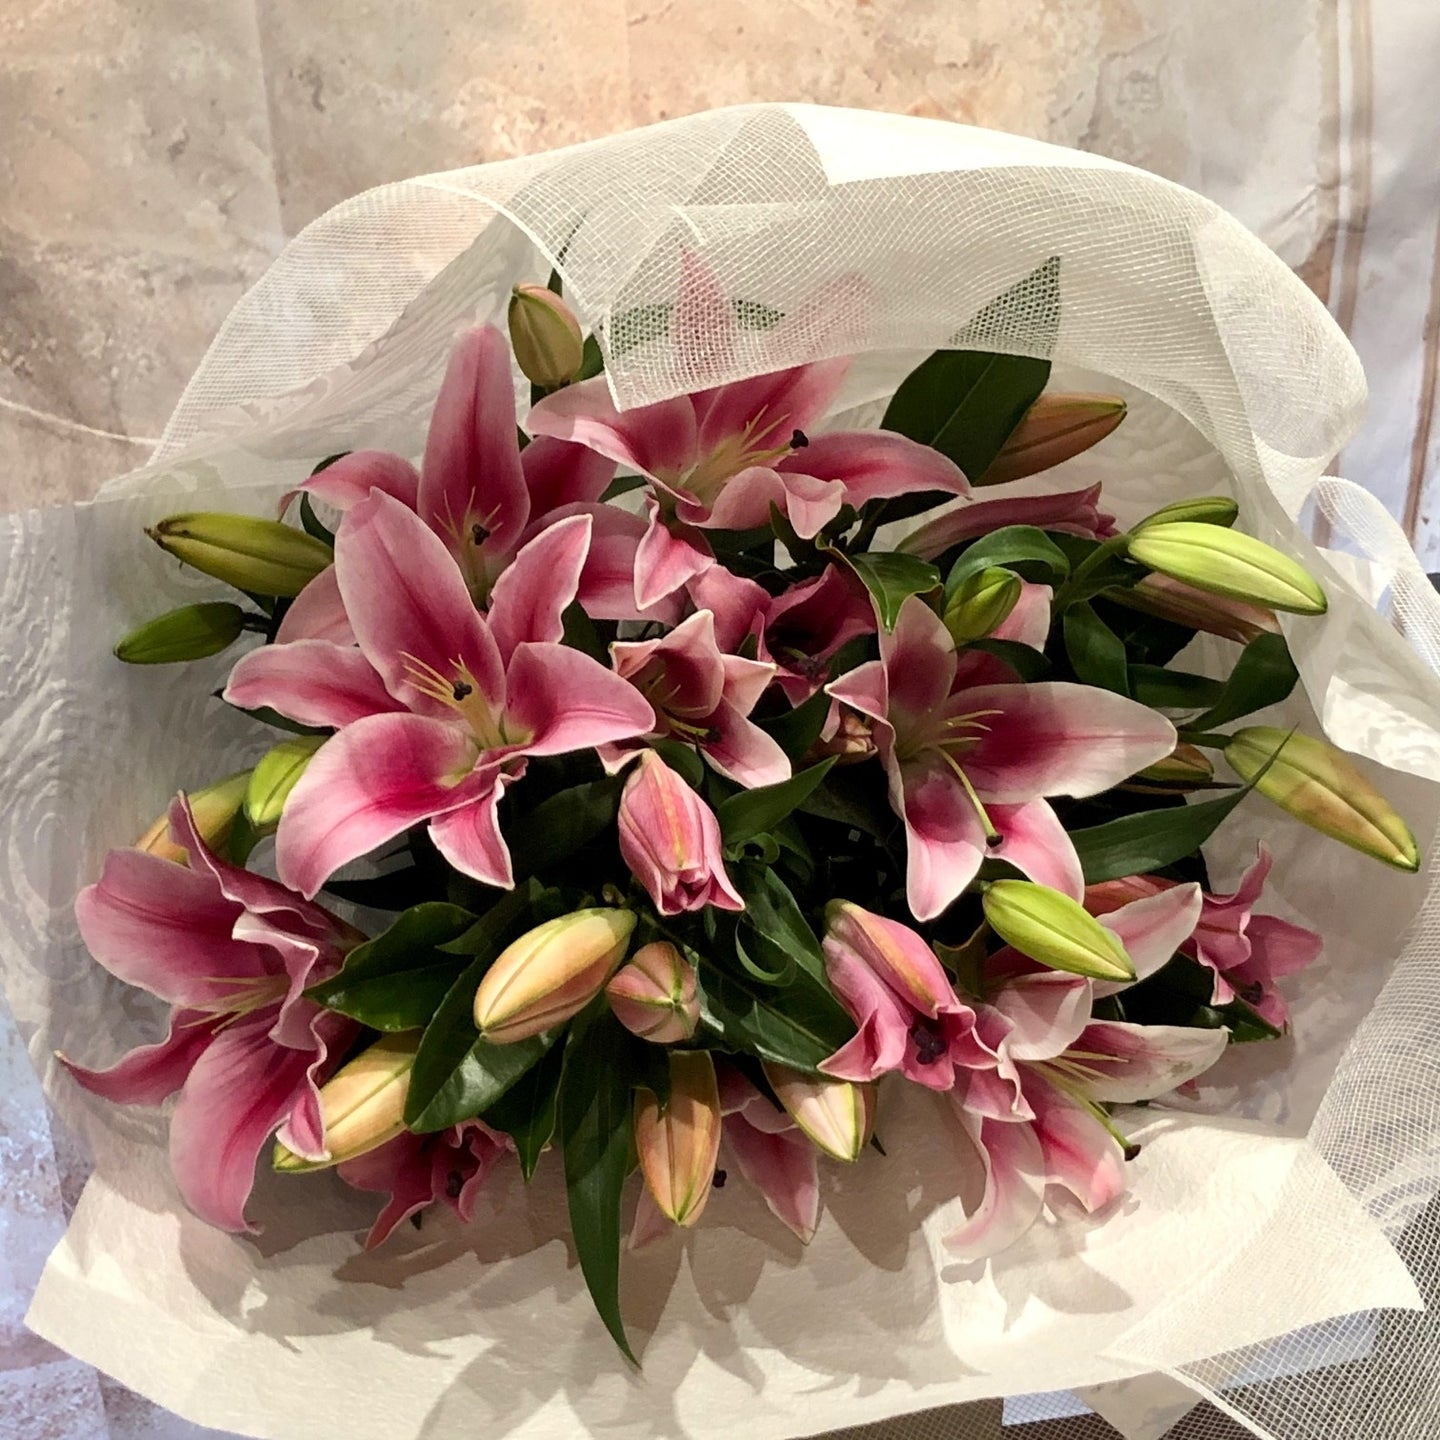 The Lily Bouquet